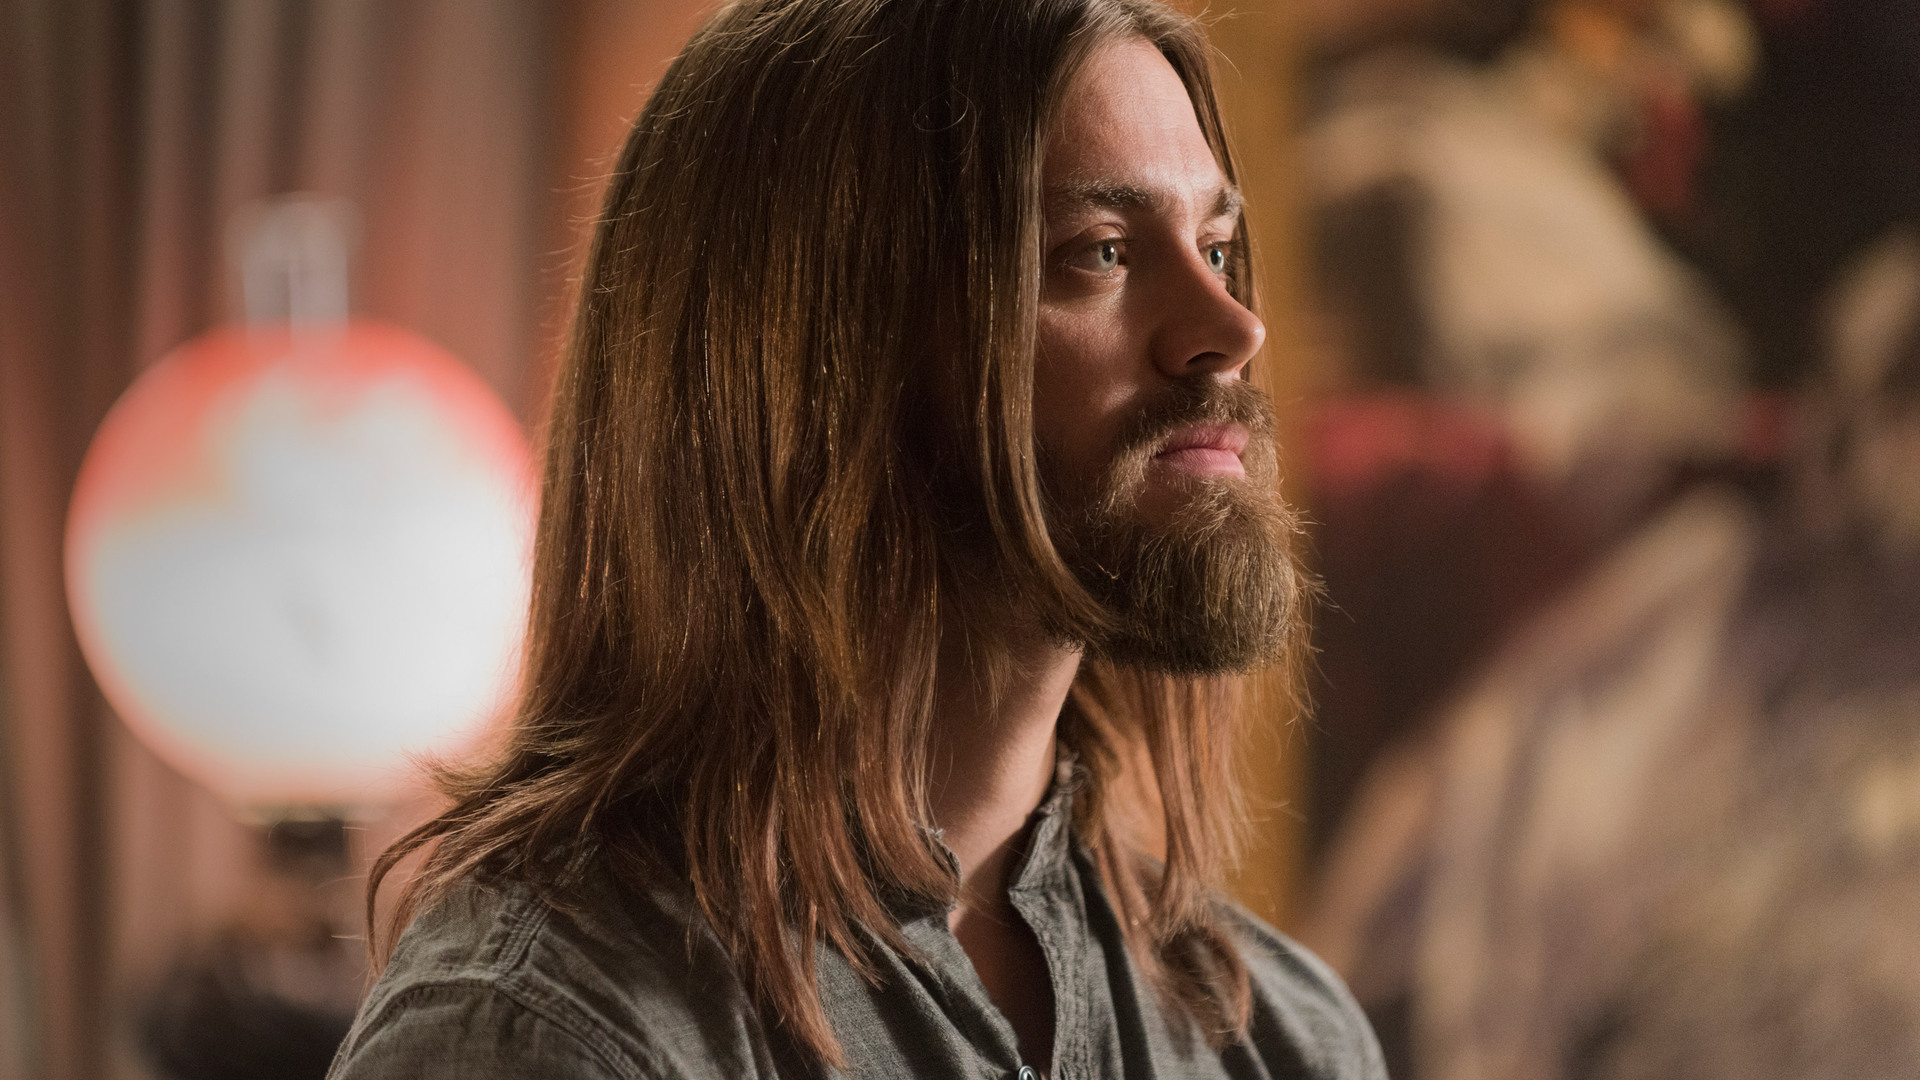 1920x1080 Jesus In The Walking Dead Season 8 Laptop Full Hd 1080p